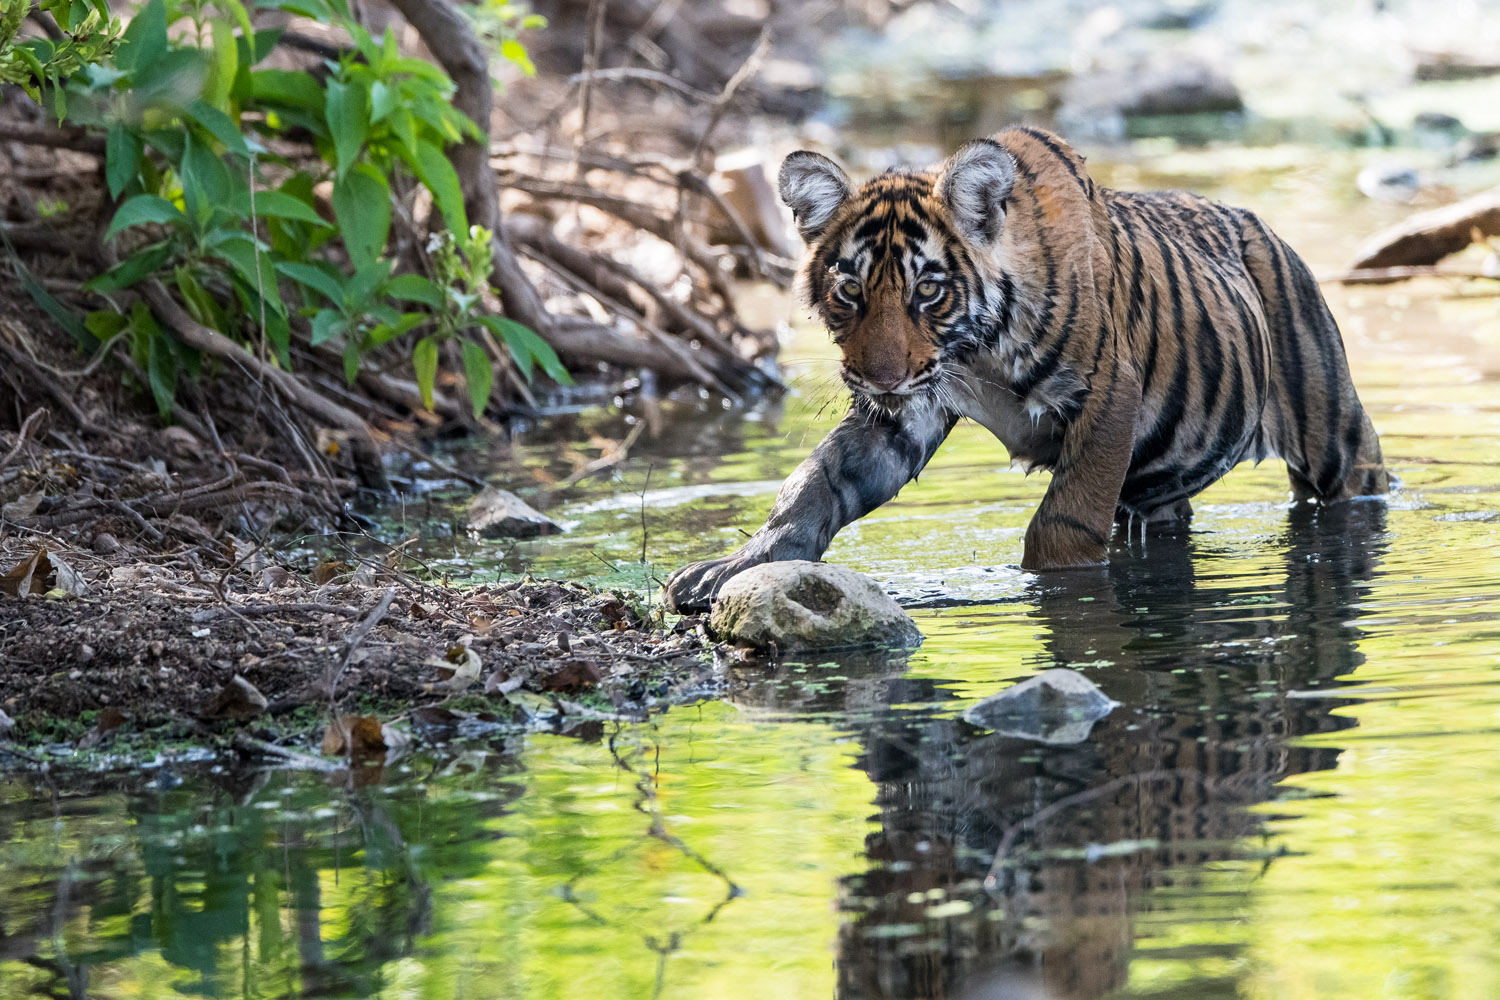 Bengal tiger cub in stream, Ranthambhore National Park, Rajasthan, India